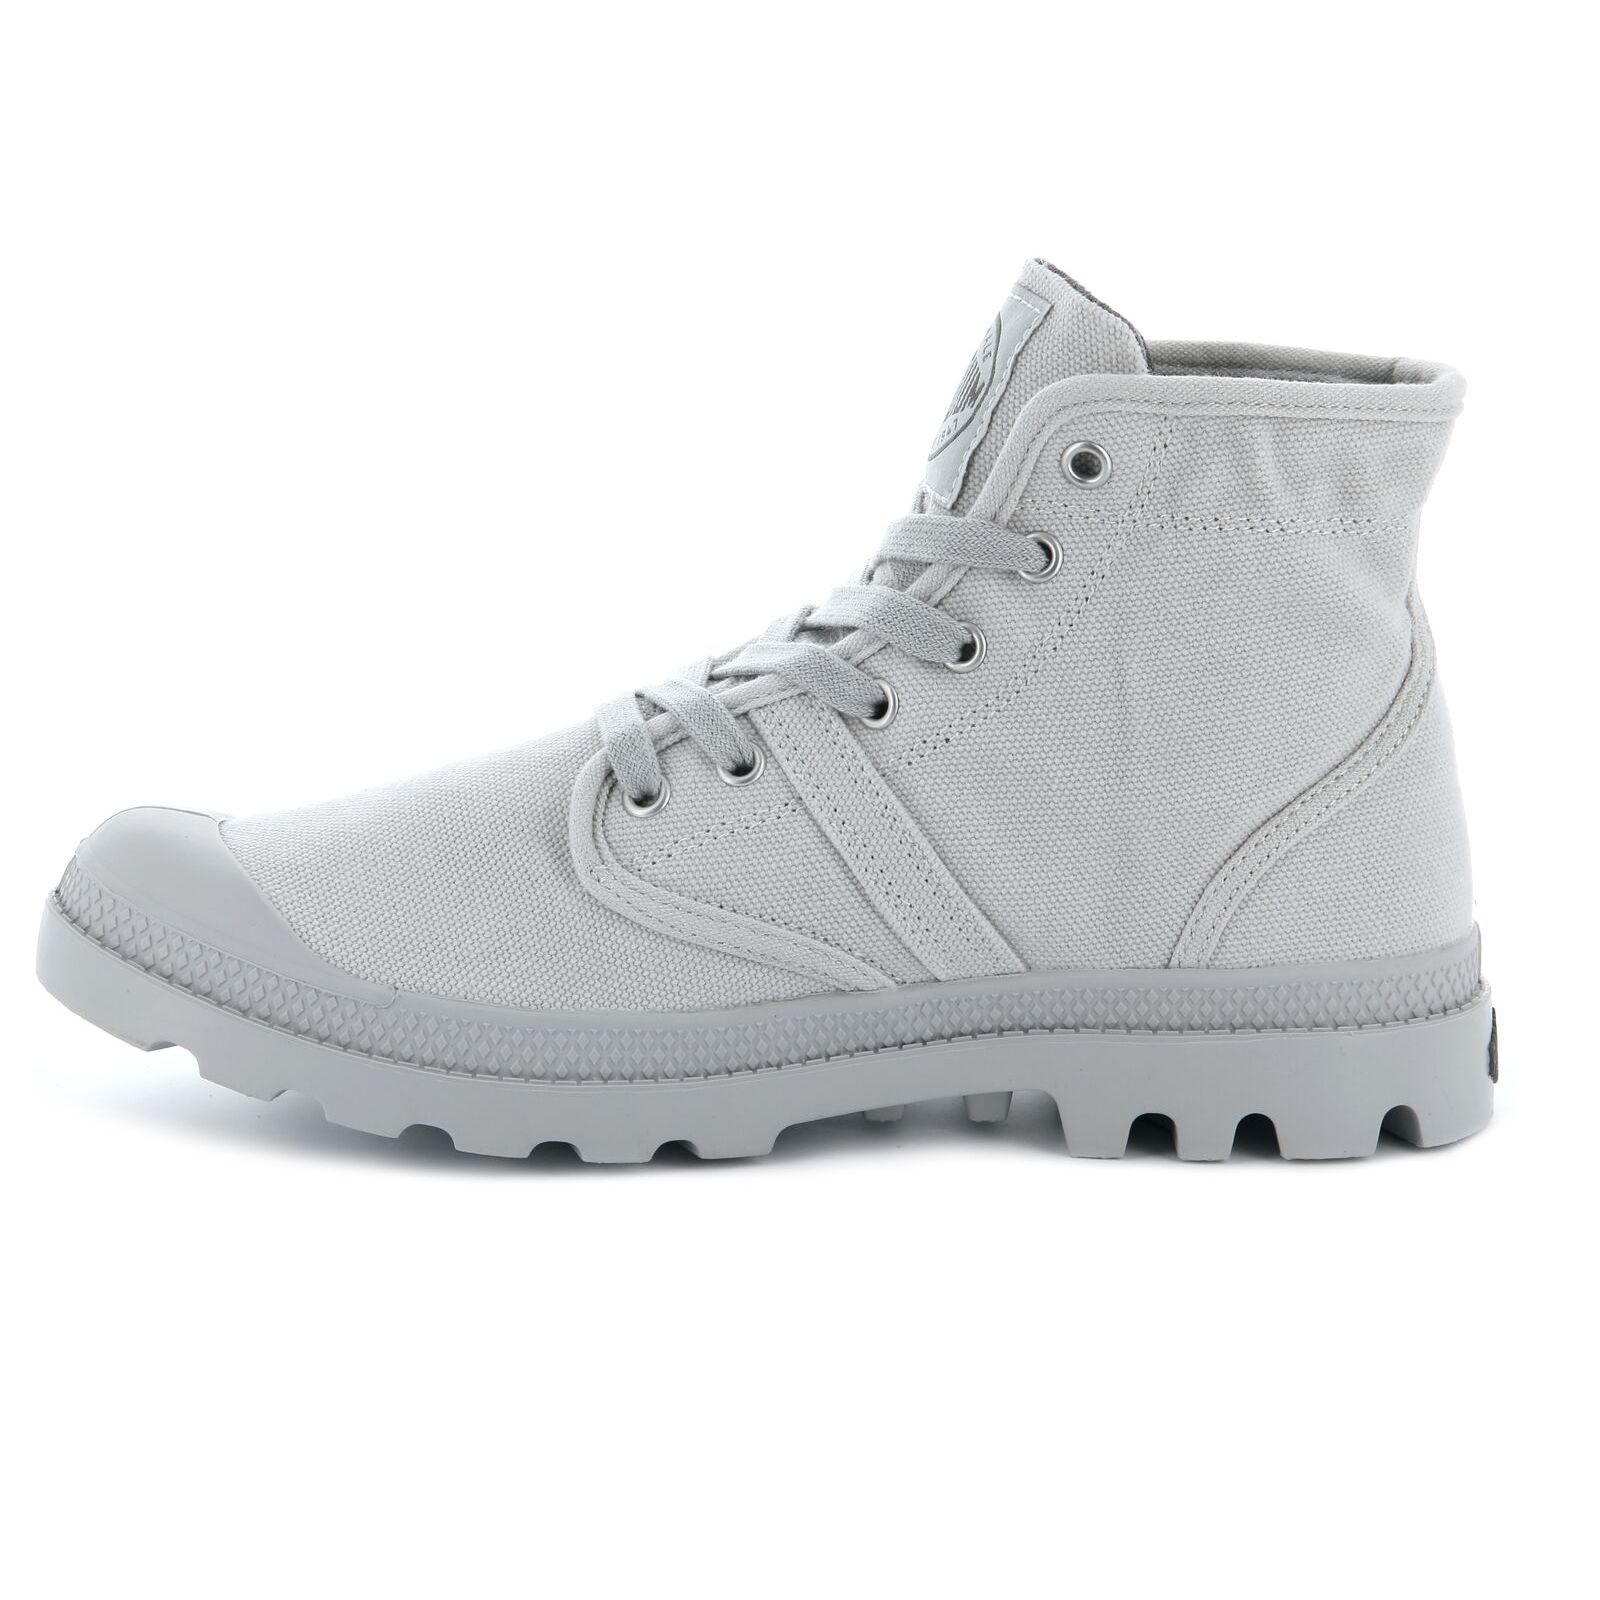 Palladium-Mens-Shoe-Pallabrouse-New-Designer-Walking-High-Top-Canvas-Ankle-Boots thumbnail 28